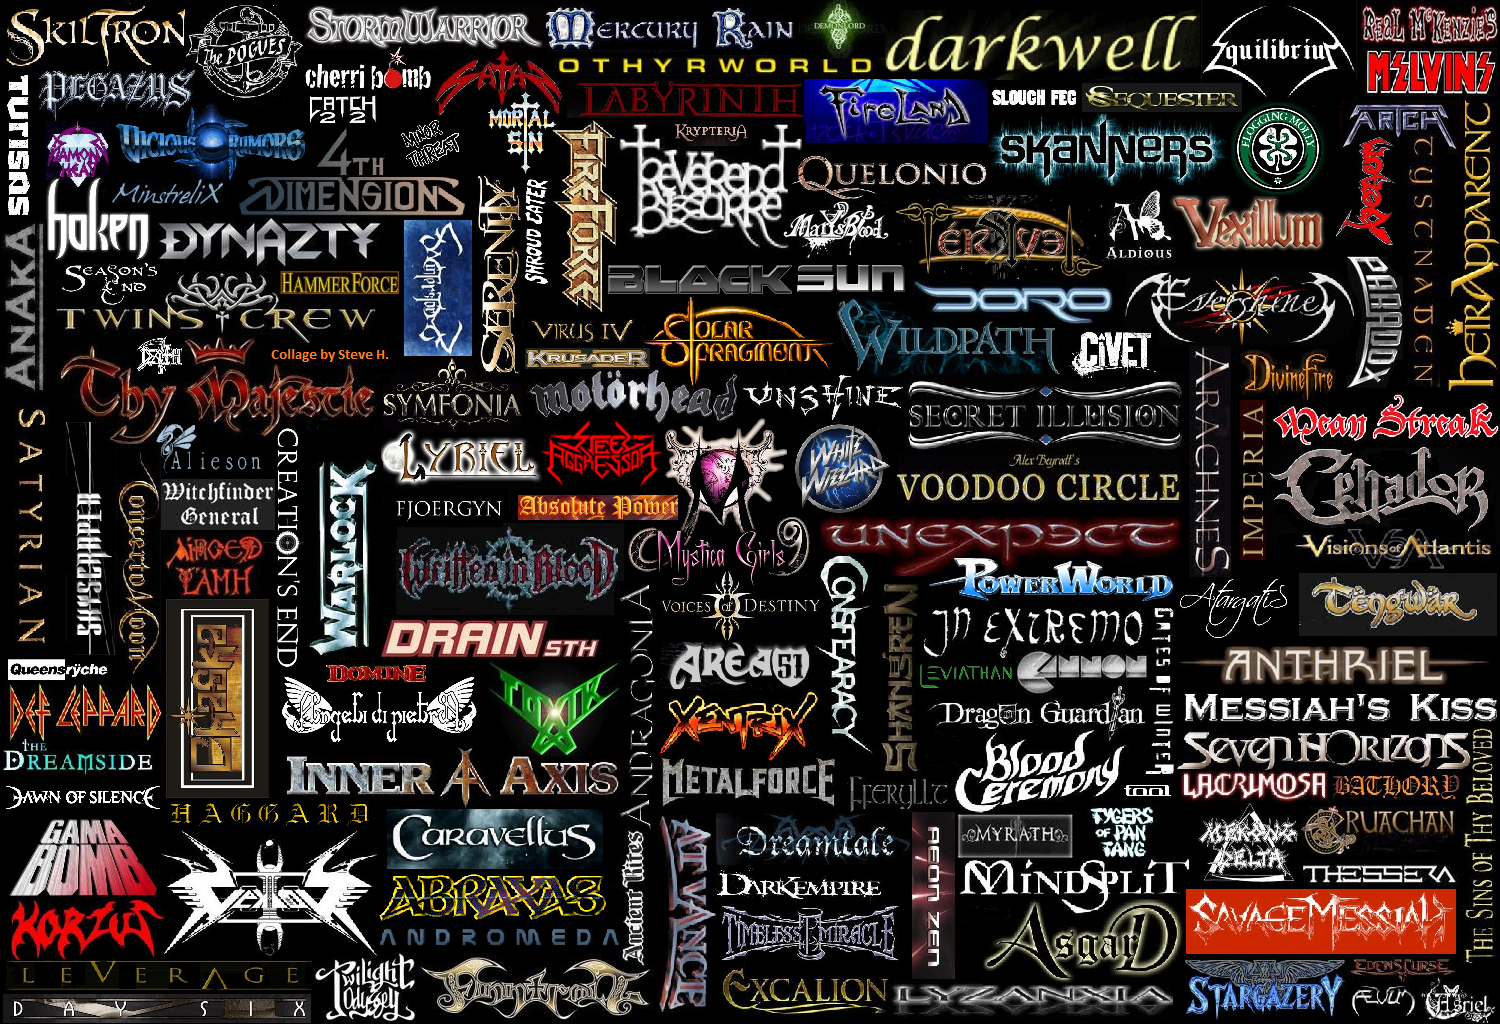 hardcore bands collage images - photo #10